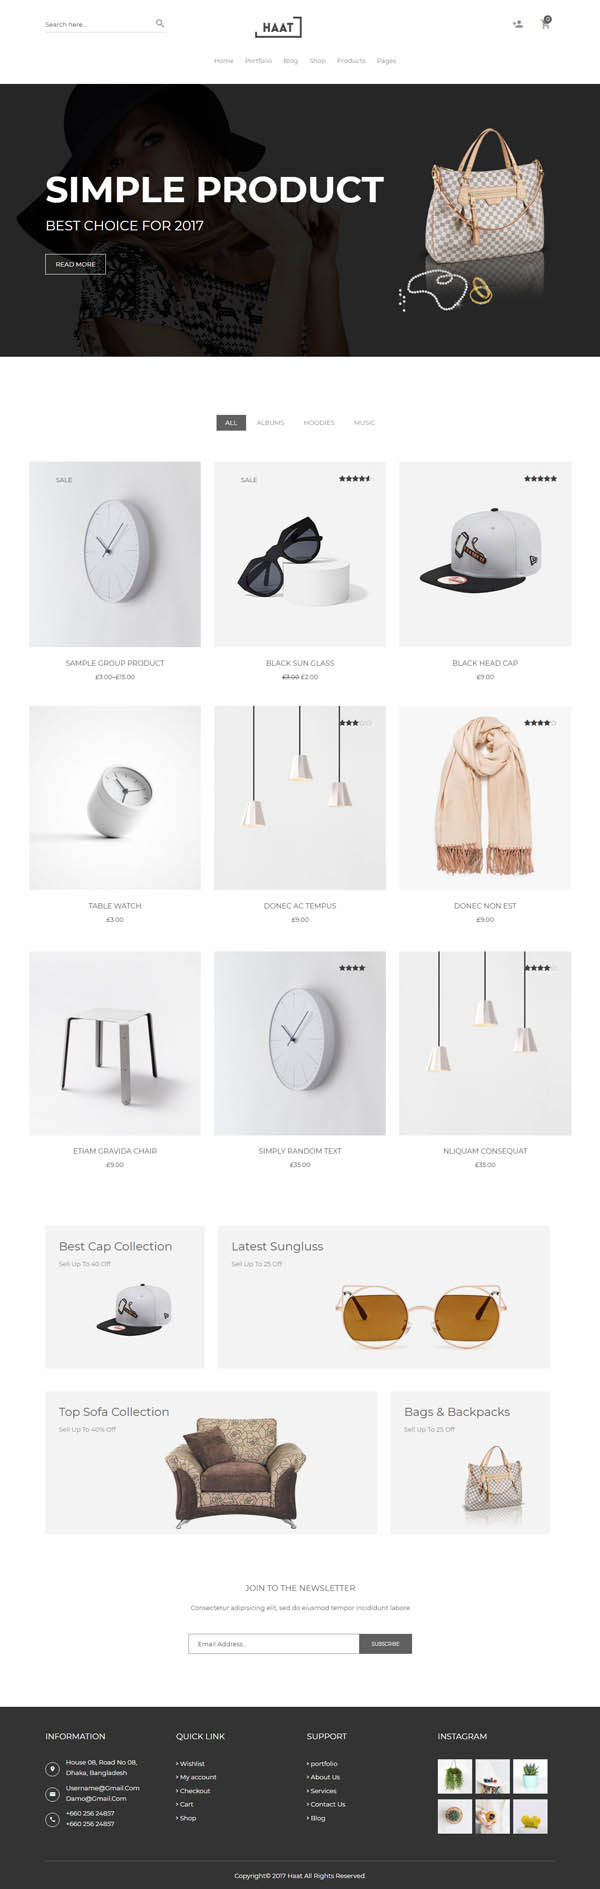 Haat - Minimalist WooCommerce WordPress Theme